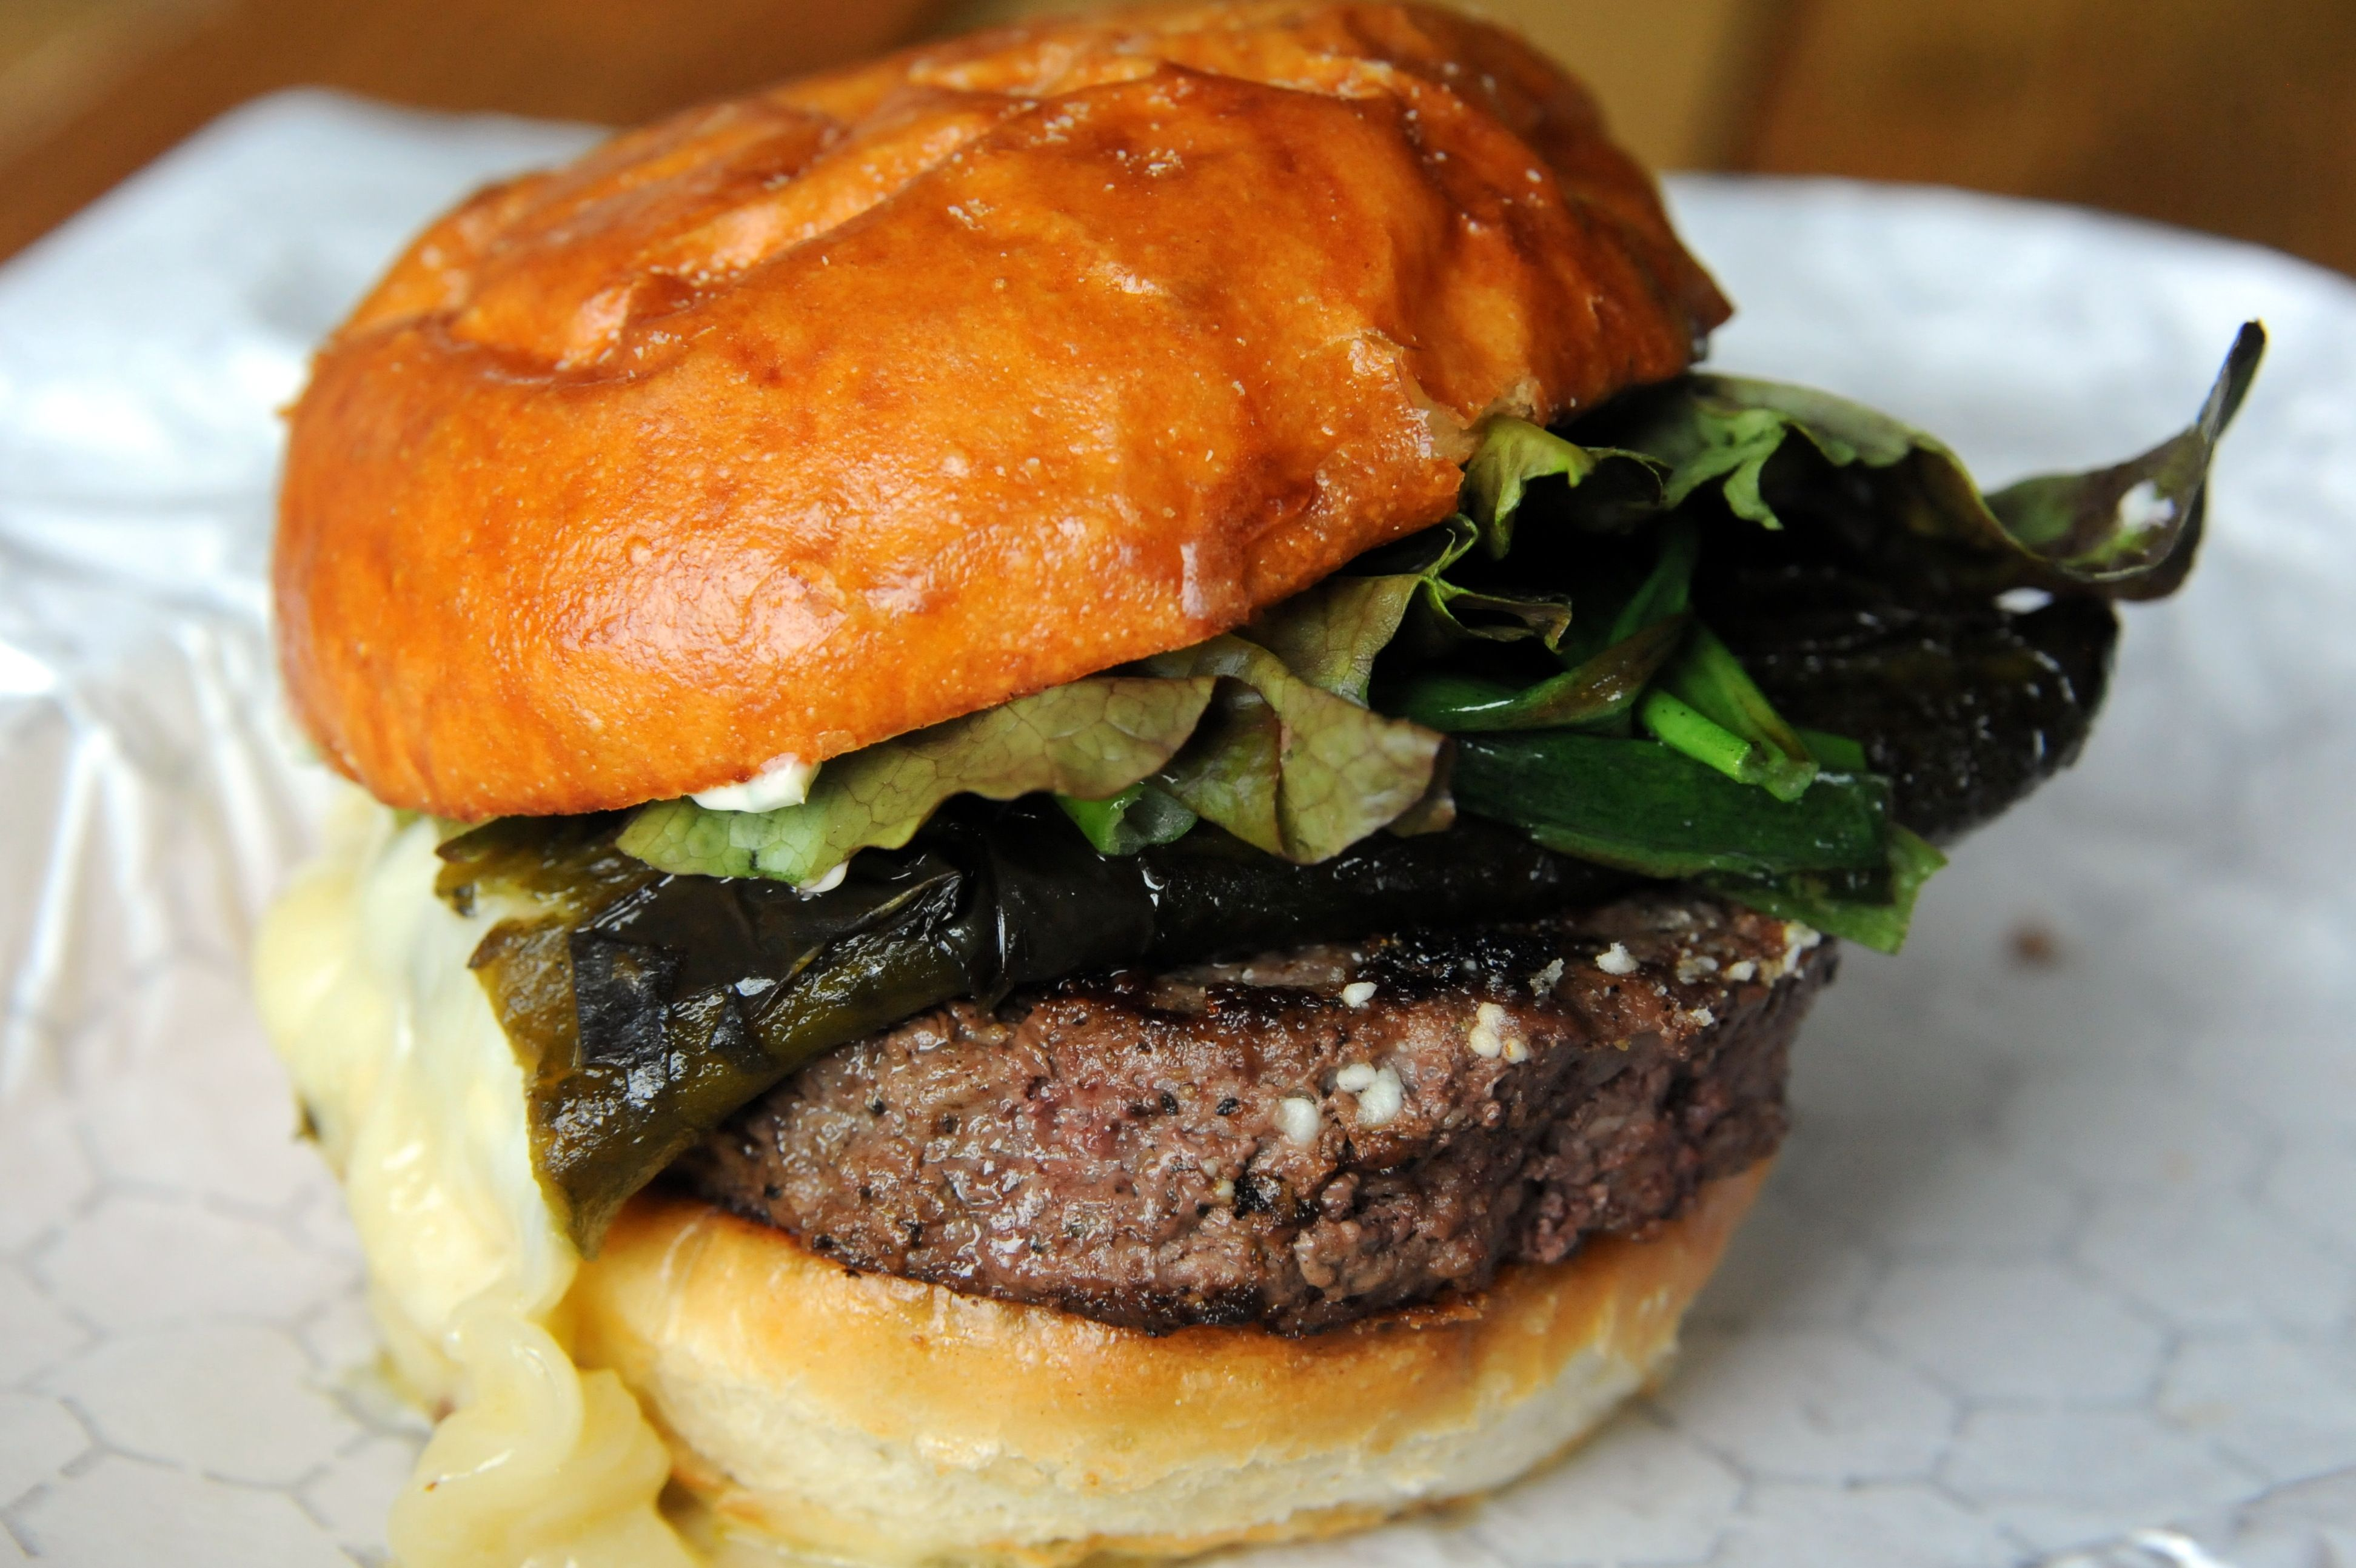 Food And Drink Try Not To Drool Over Burger Photos From New Oddly Named Restaurant Thurber Mingus Guidelive Food And Drink Food Burger